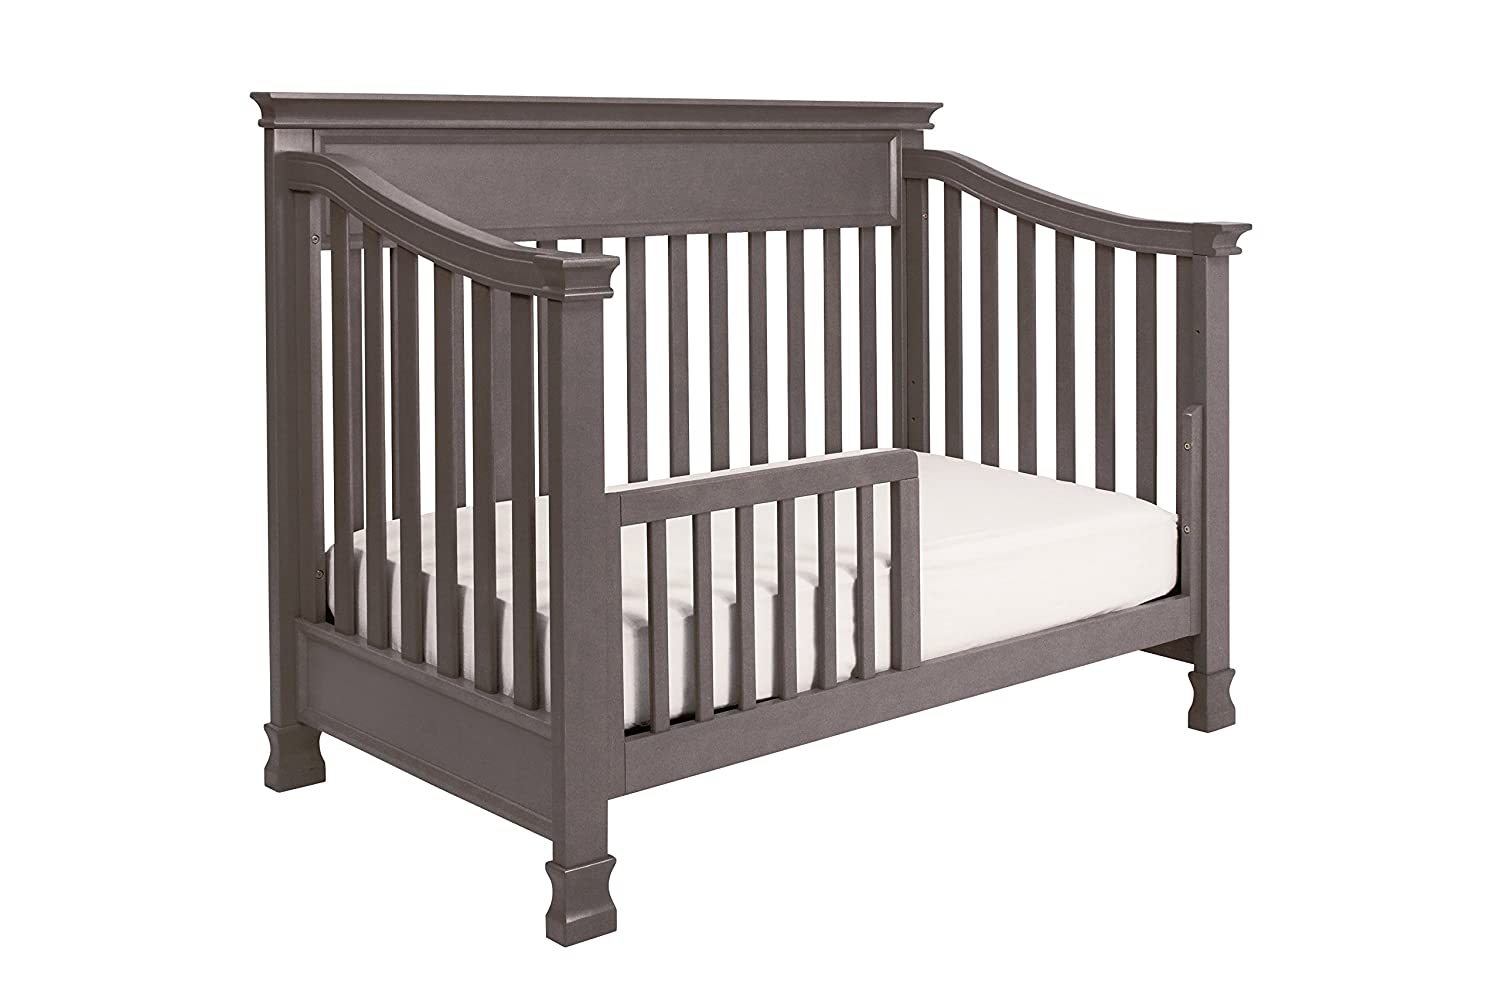 Crib for babies online india - Amazon Com Million Dollar Baby Classic Foothill 4 In 1 Convertible Crib With Toddler Rail Weathered Grey Baby